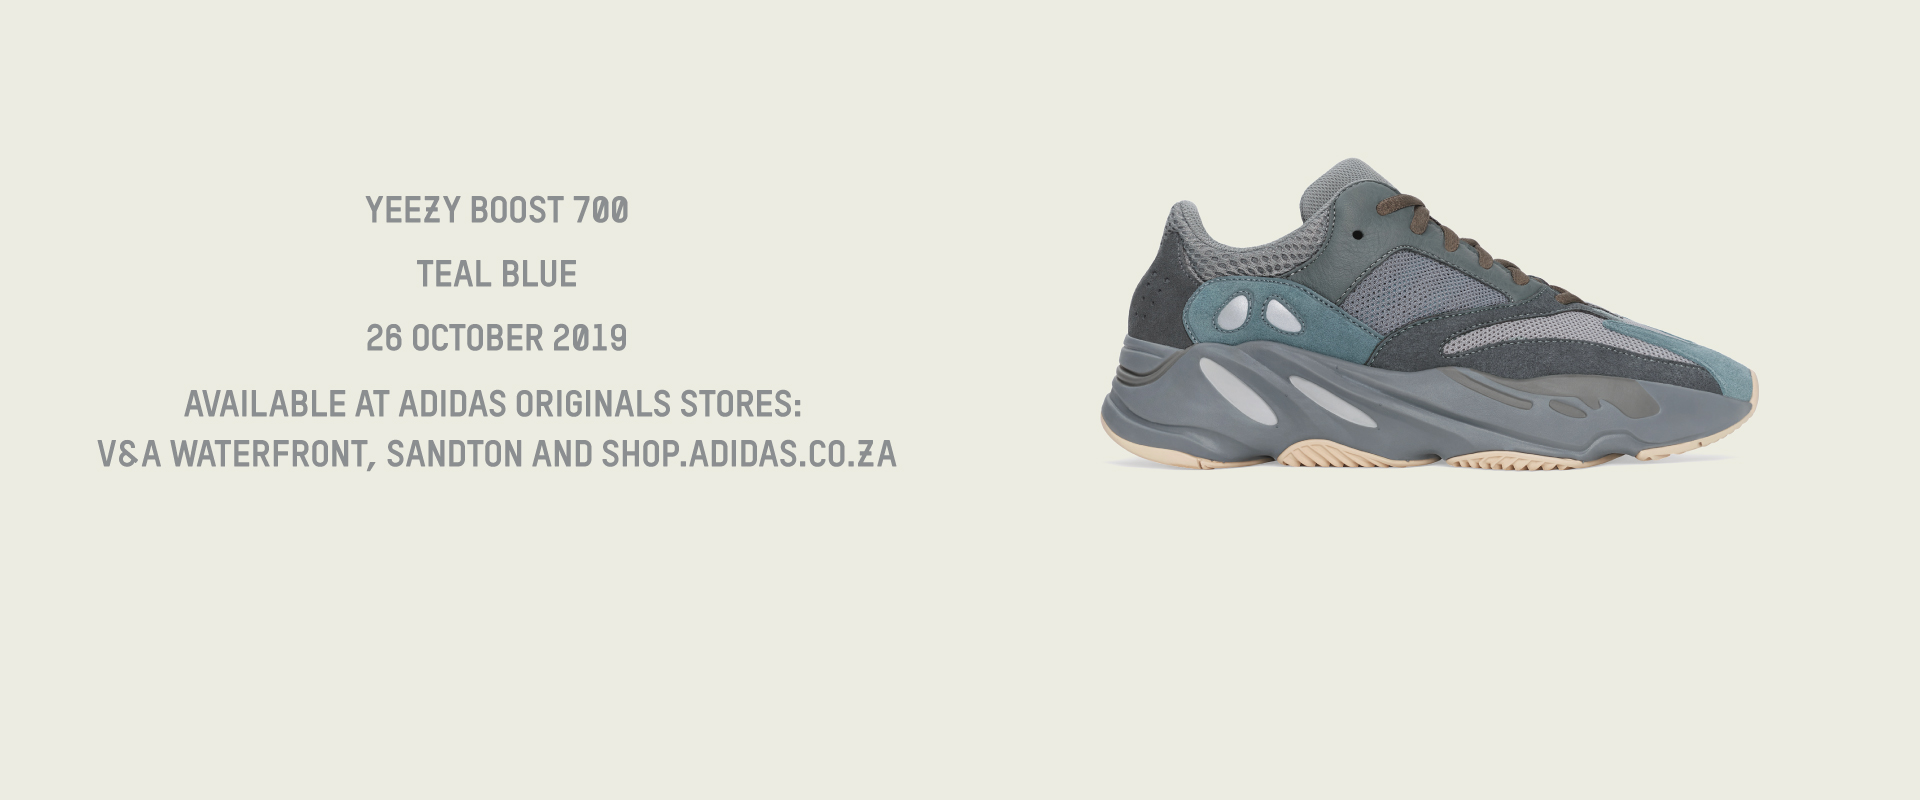 temperament shoes nice shoes quality Official adidas Website | adidas South Africa